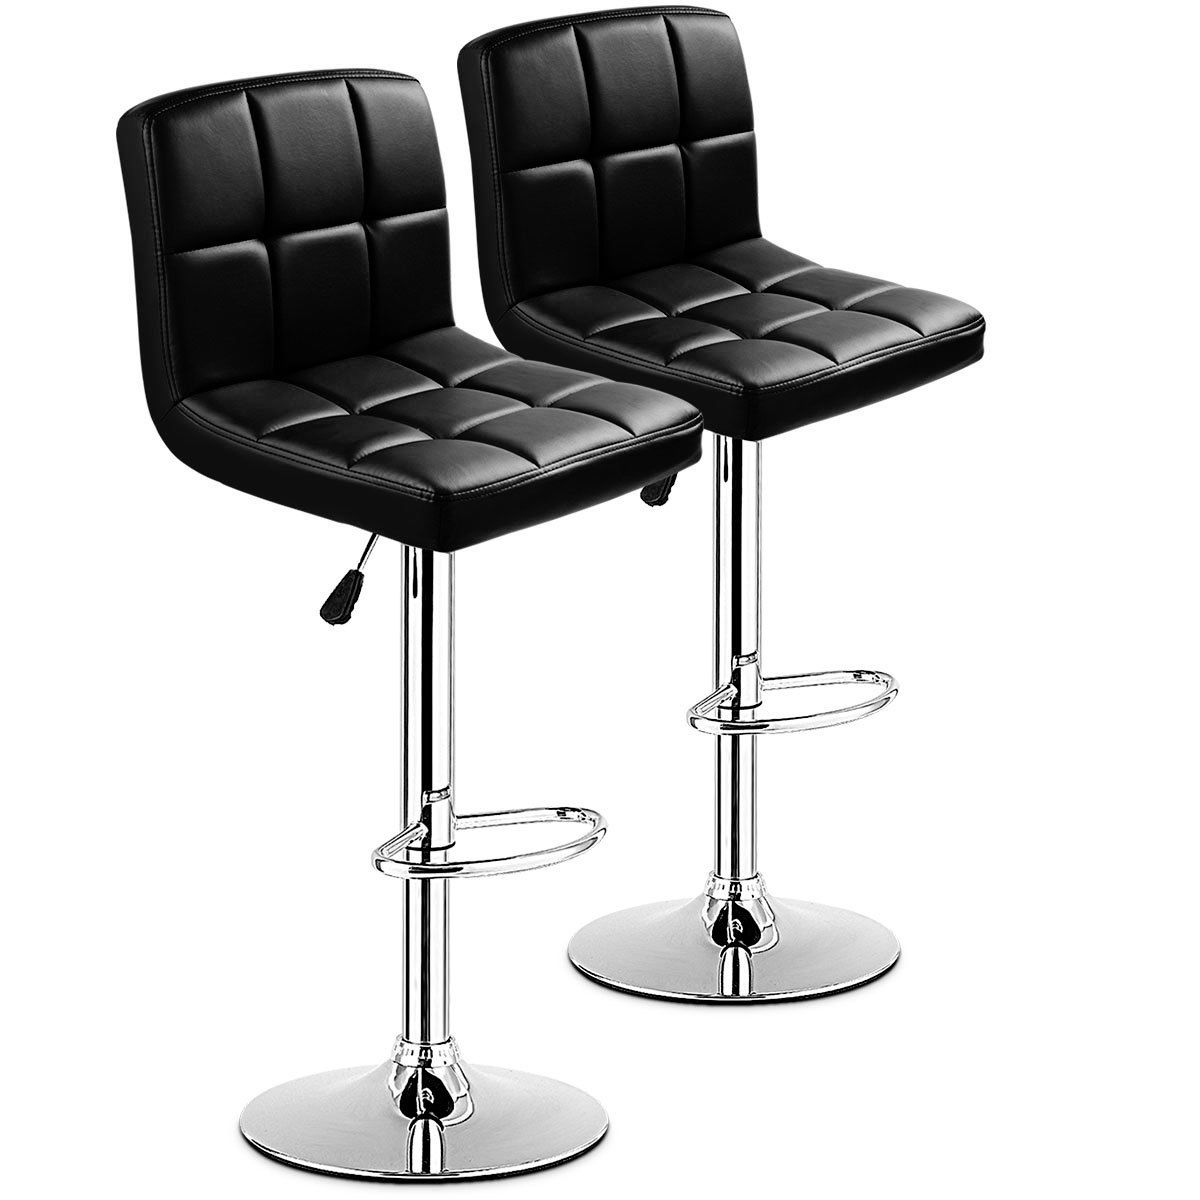 Set Of 2 Bar Stools PU Leather Adjustable Barstool Swivel Pub Chairs Black